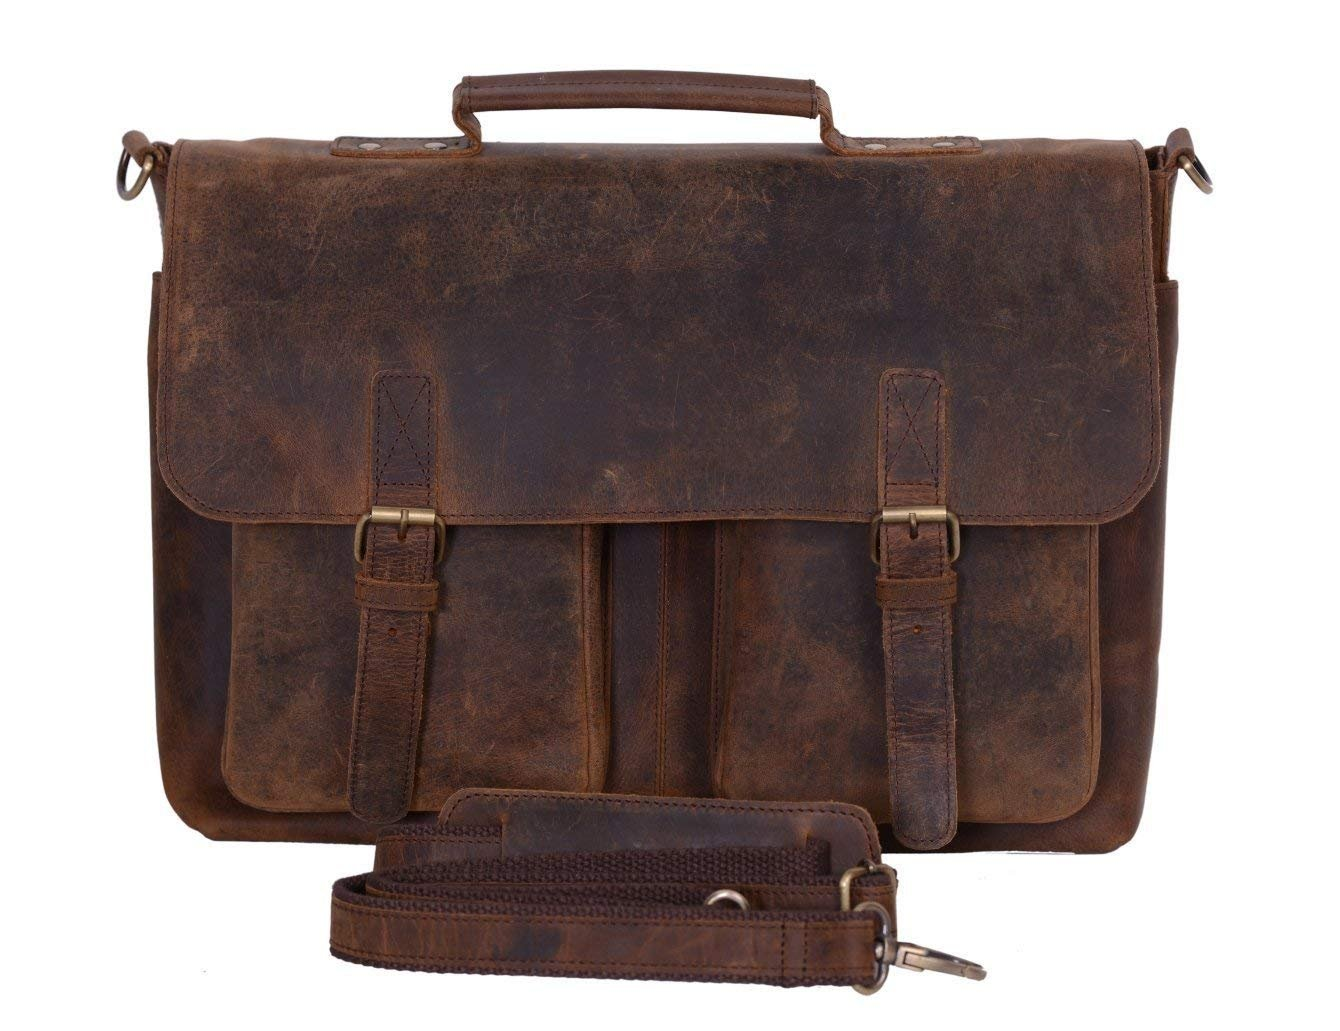 KomalC 18 Inch Retro Buffalo Hunter Leather Laptop Messenger Bag Office  Briefcase College Bag for Men and Women  Amazon.co.uk  Computers    Accessories 6b2f85bf6c851